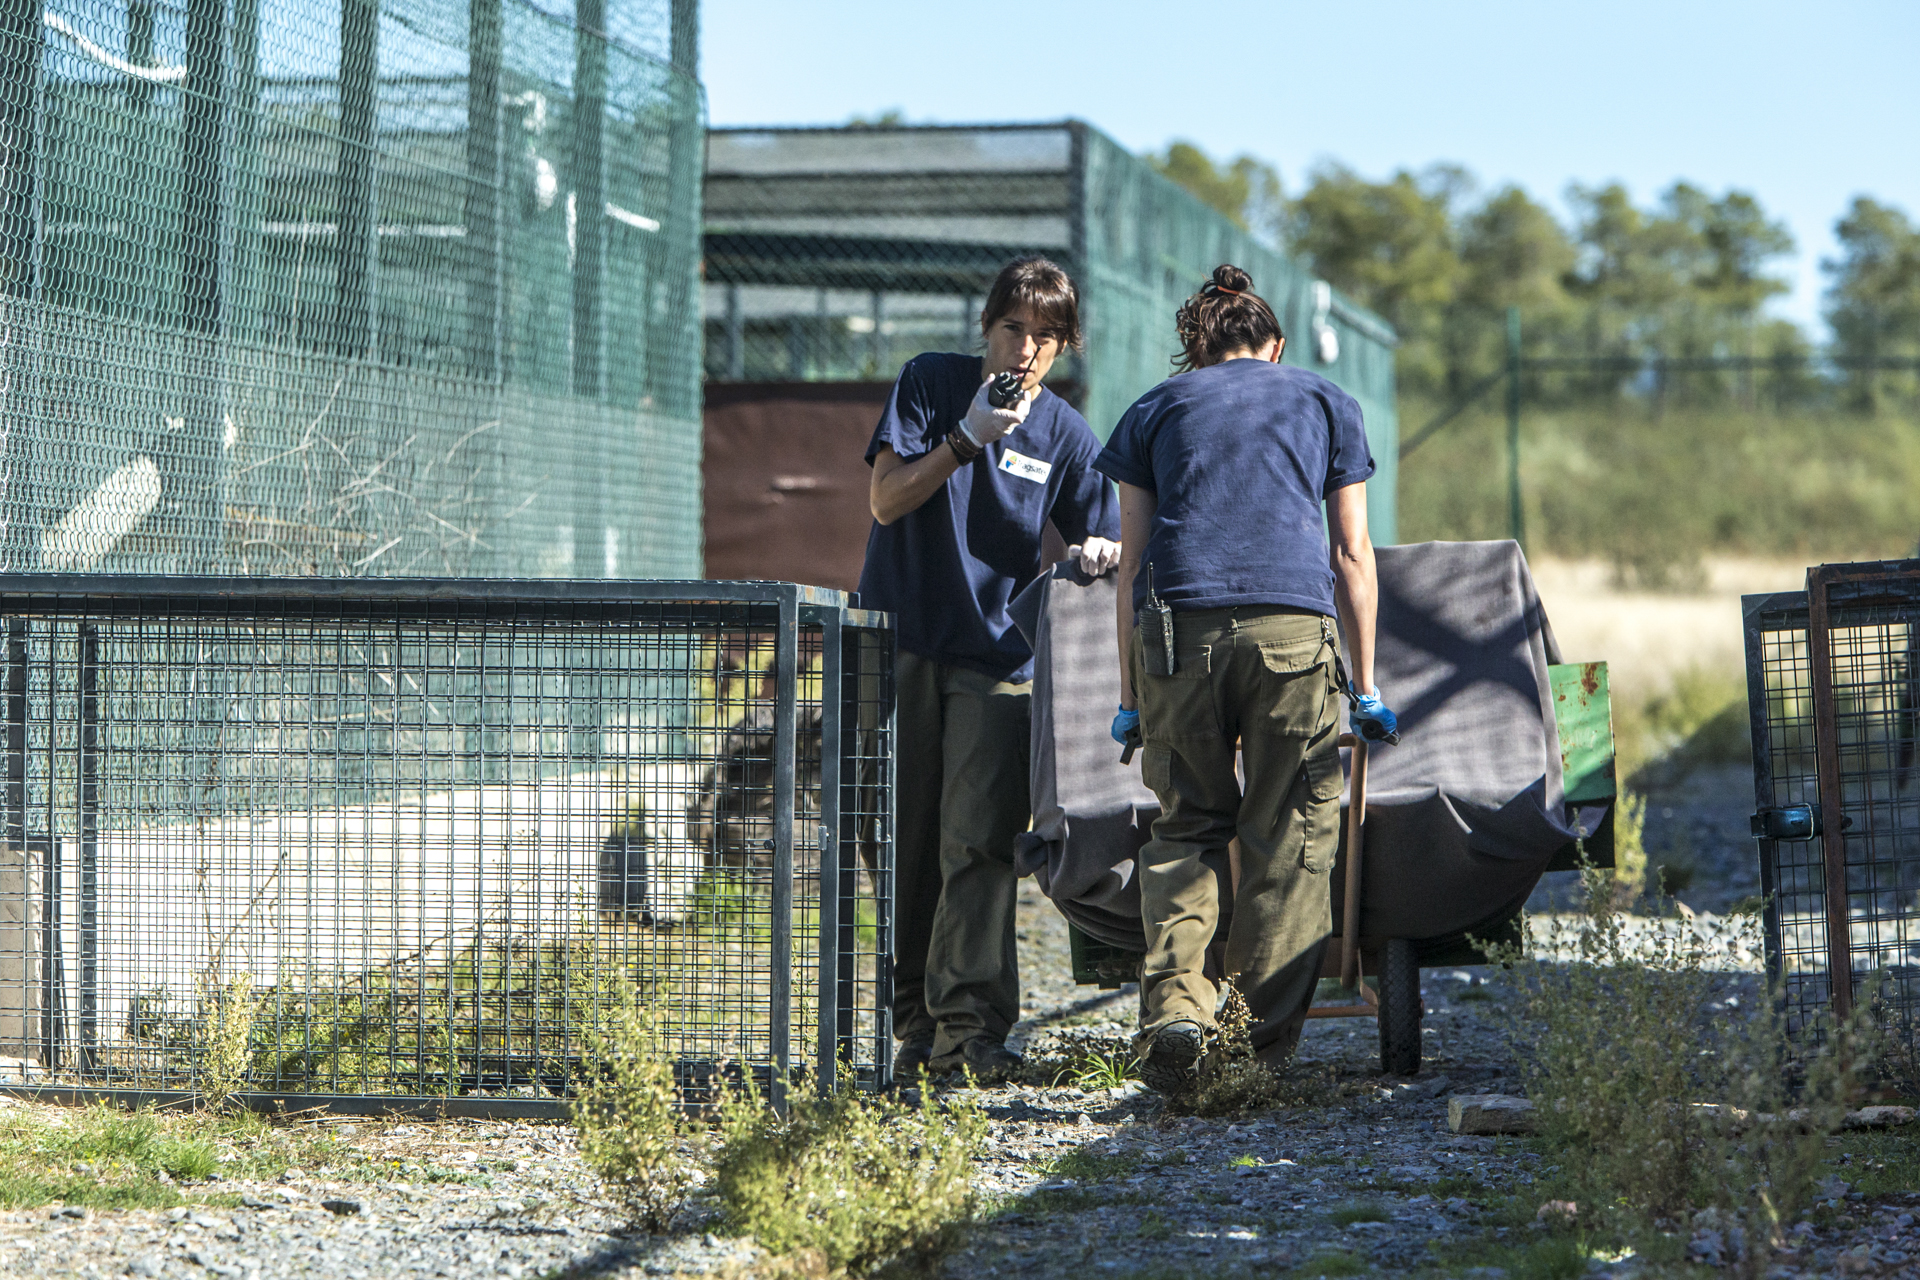 The breeding facilities are incredibly secure, here a lynx is moved between enclosures by workers.